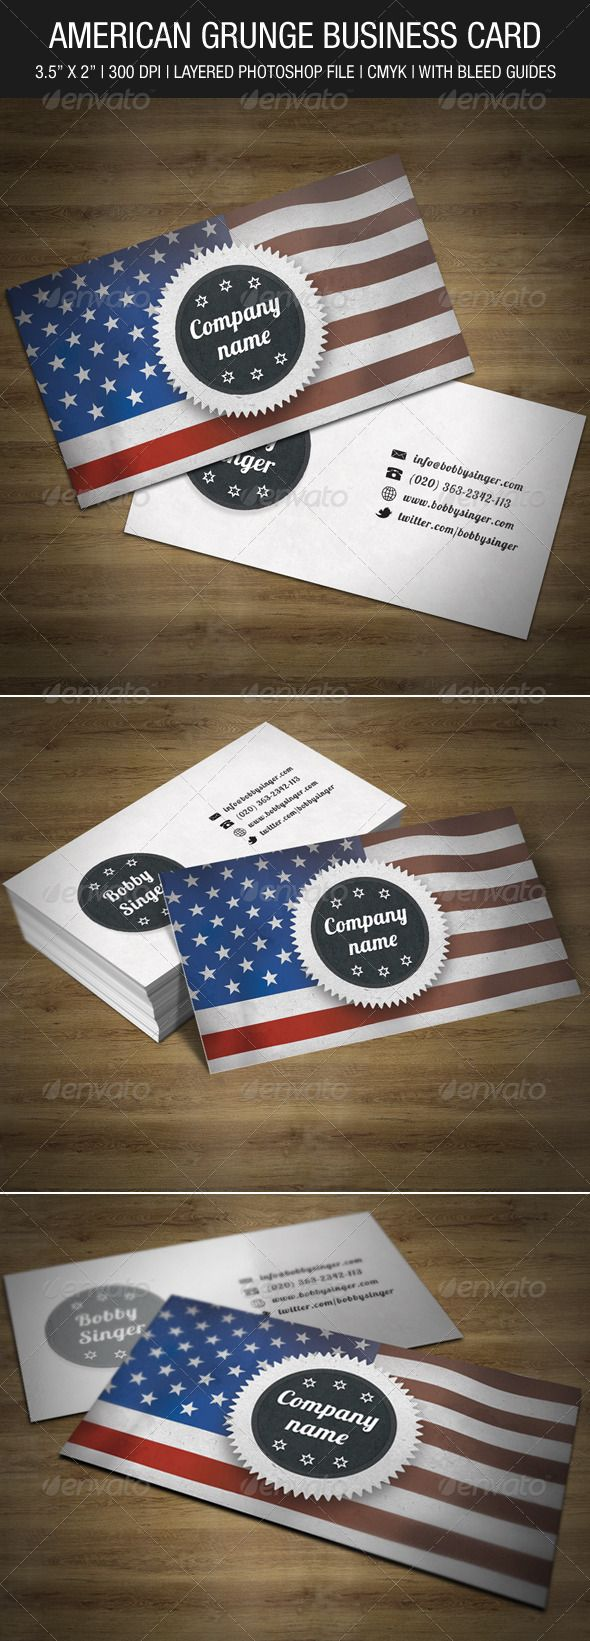 101 best print templates images on pinterest print templates font american grunge business card graphicriver this business card is print ready cmyk 300dpi reheart Gallery